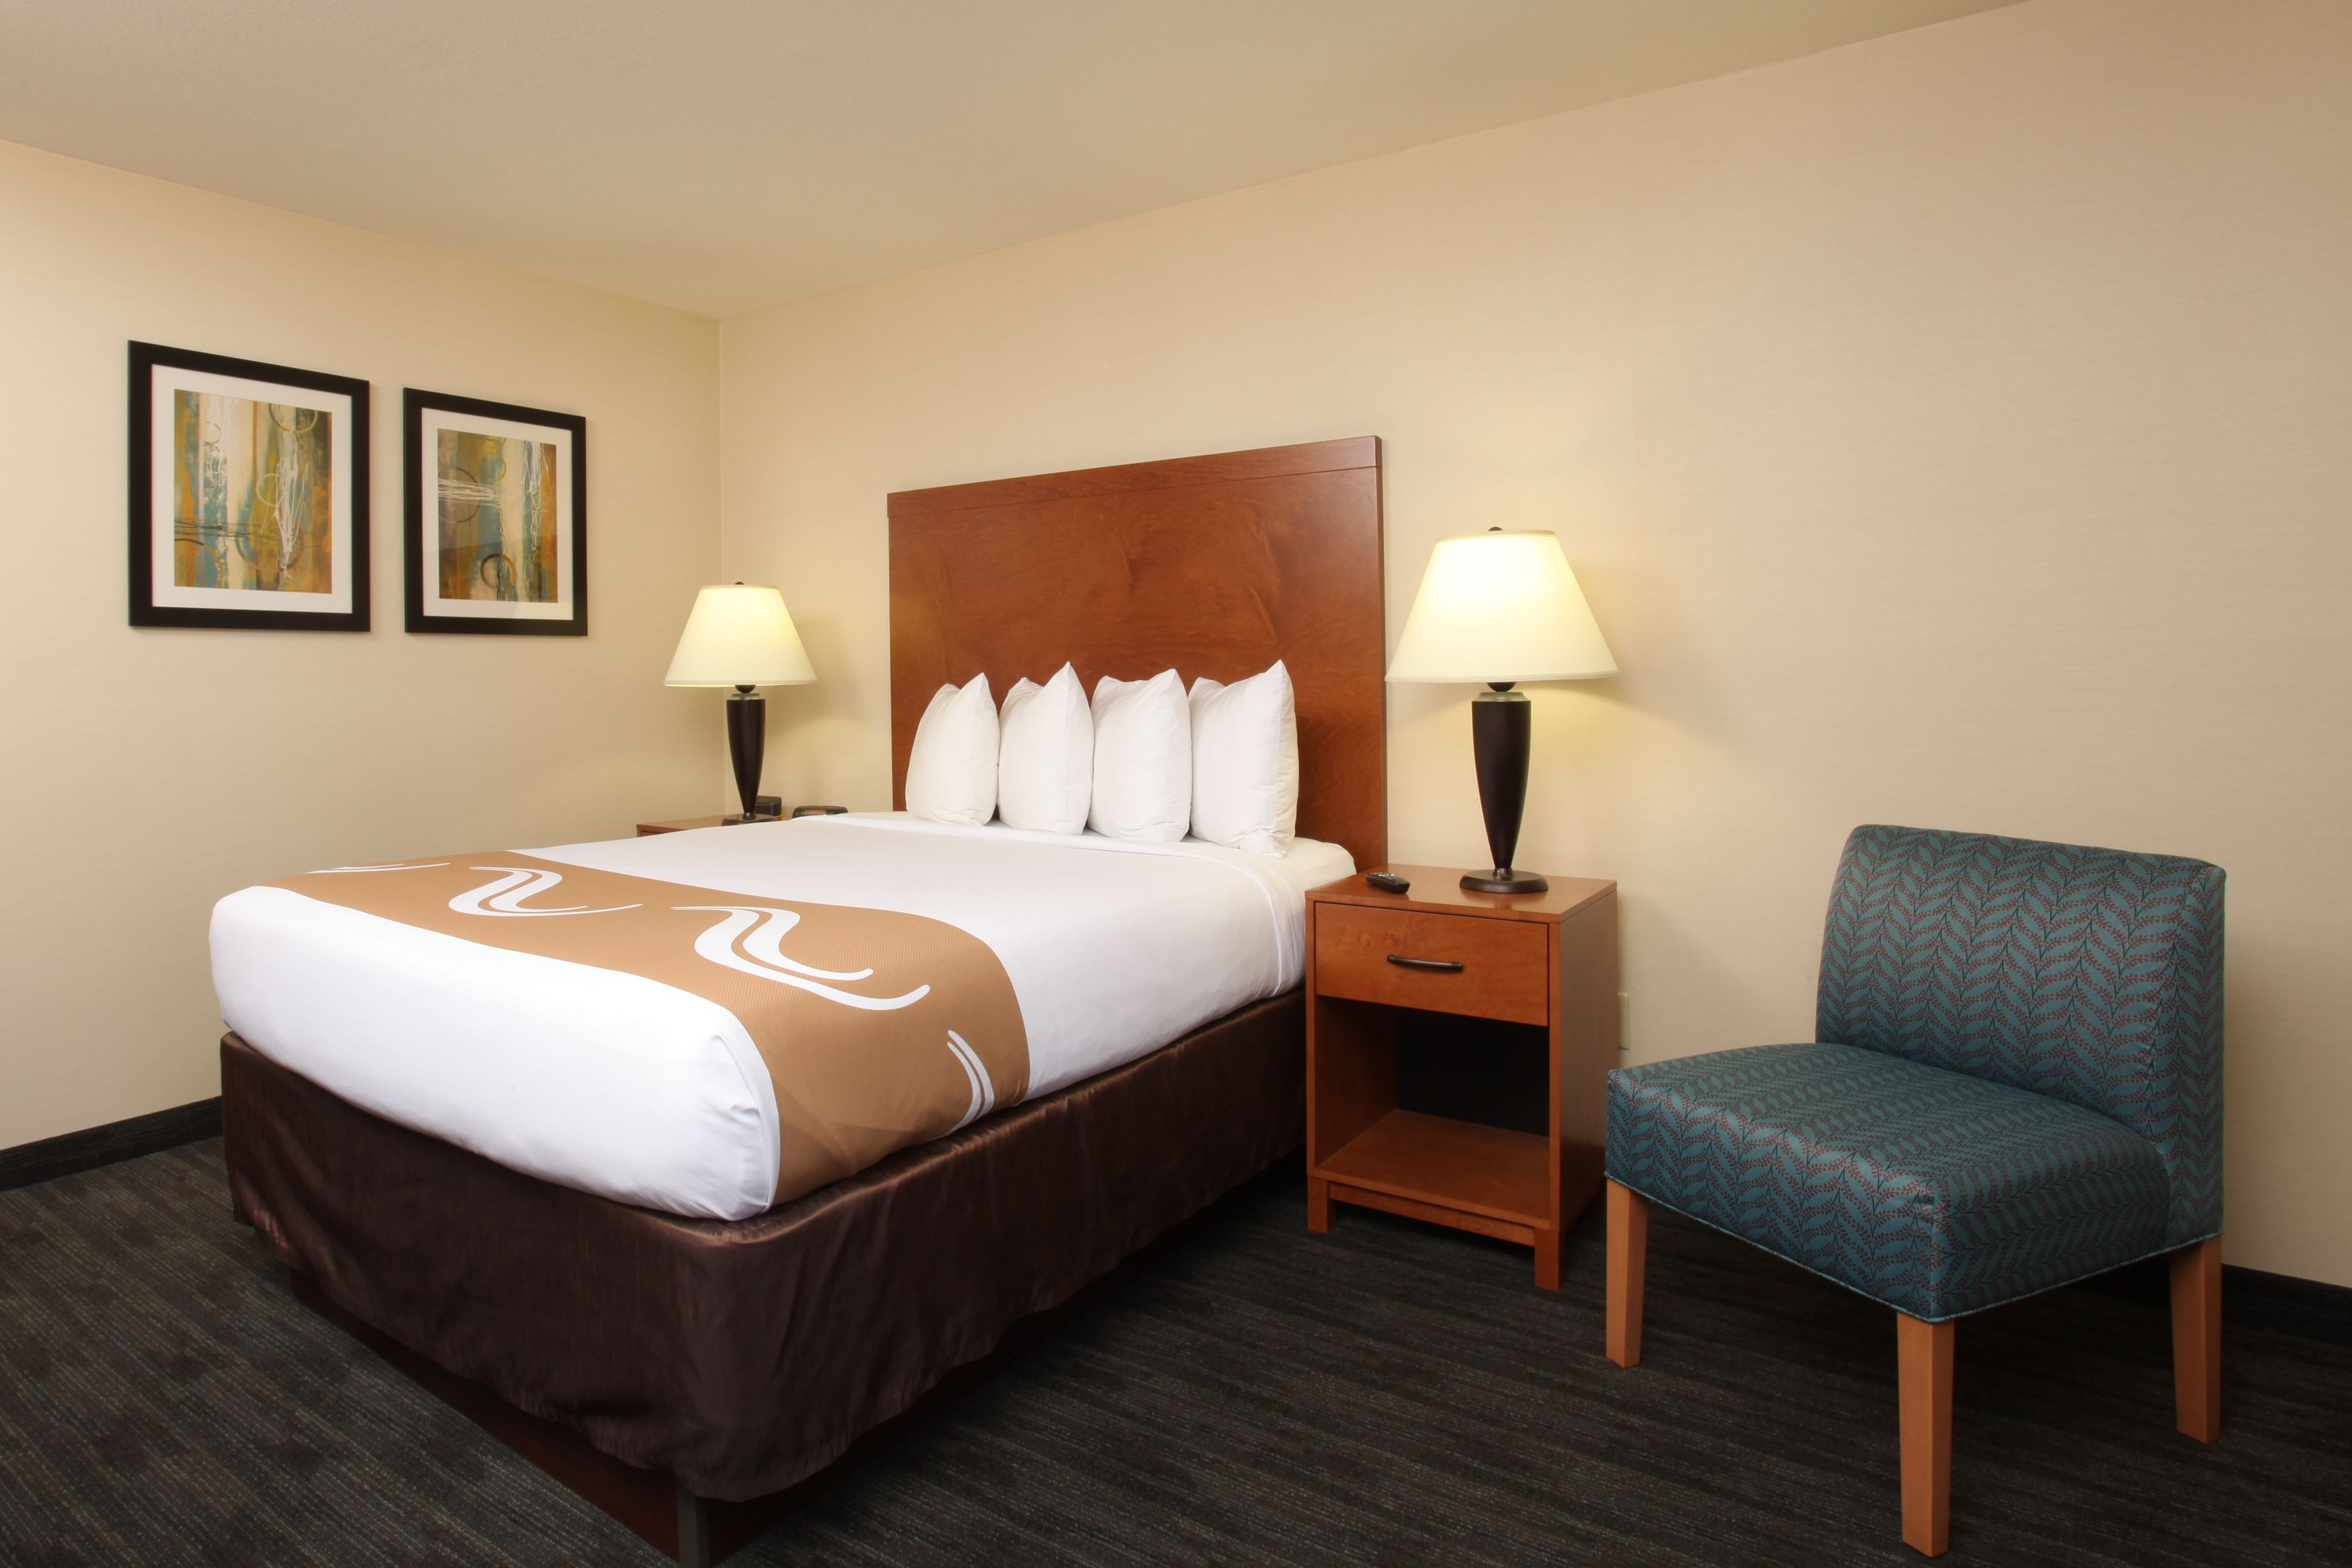 hotel rooms and suites in spokane washington quality inn. Black Bedroom Furniture Sets. Home Design Ideas